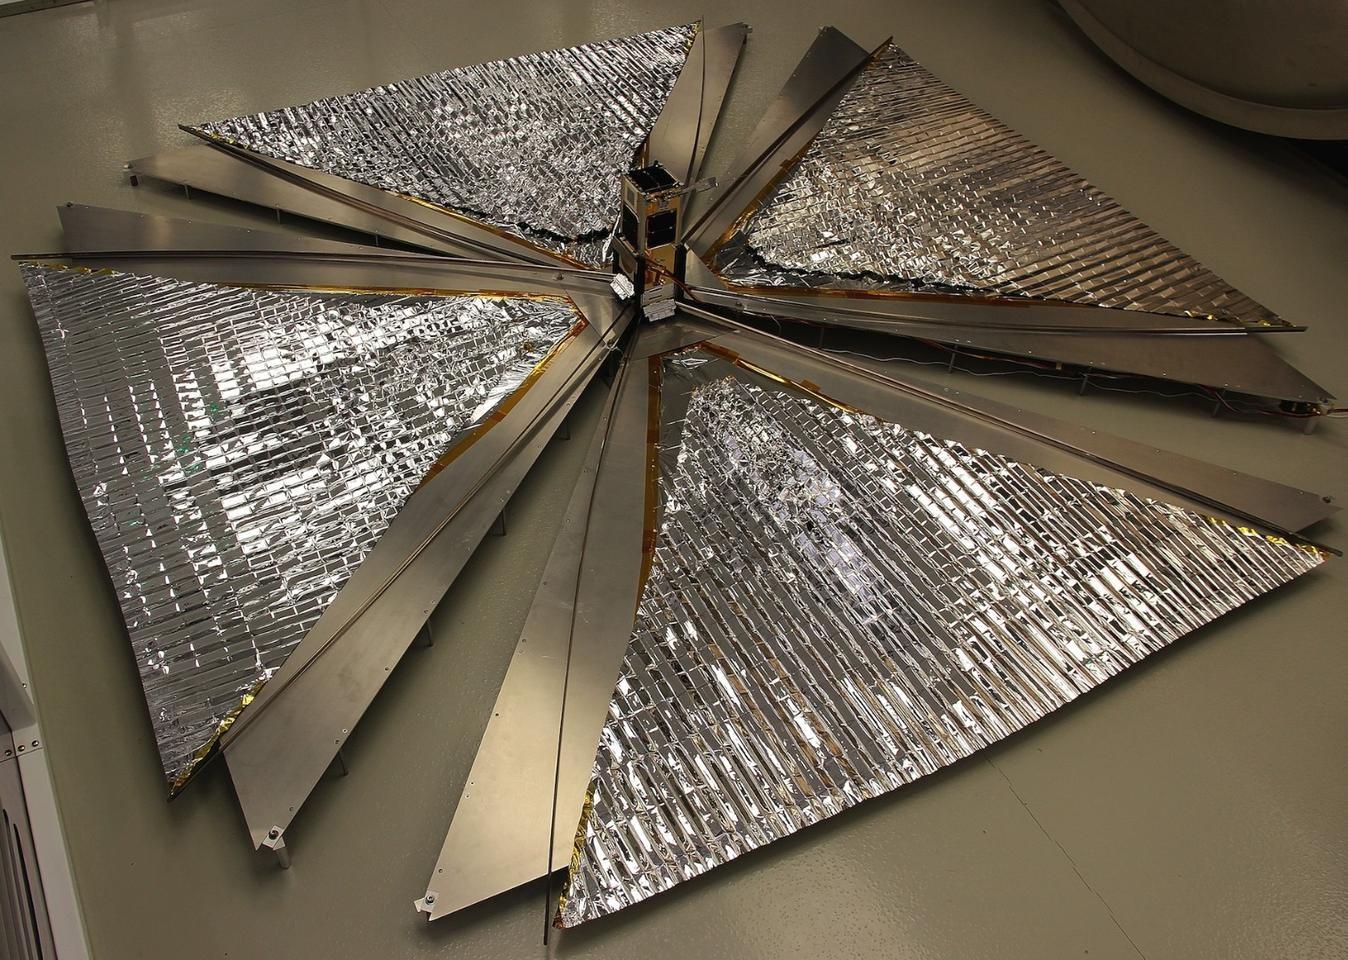 The CanX-7 satellite with its 1 square-meter (10.78 sq ft)drag sails unfurled, in a test before launch